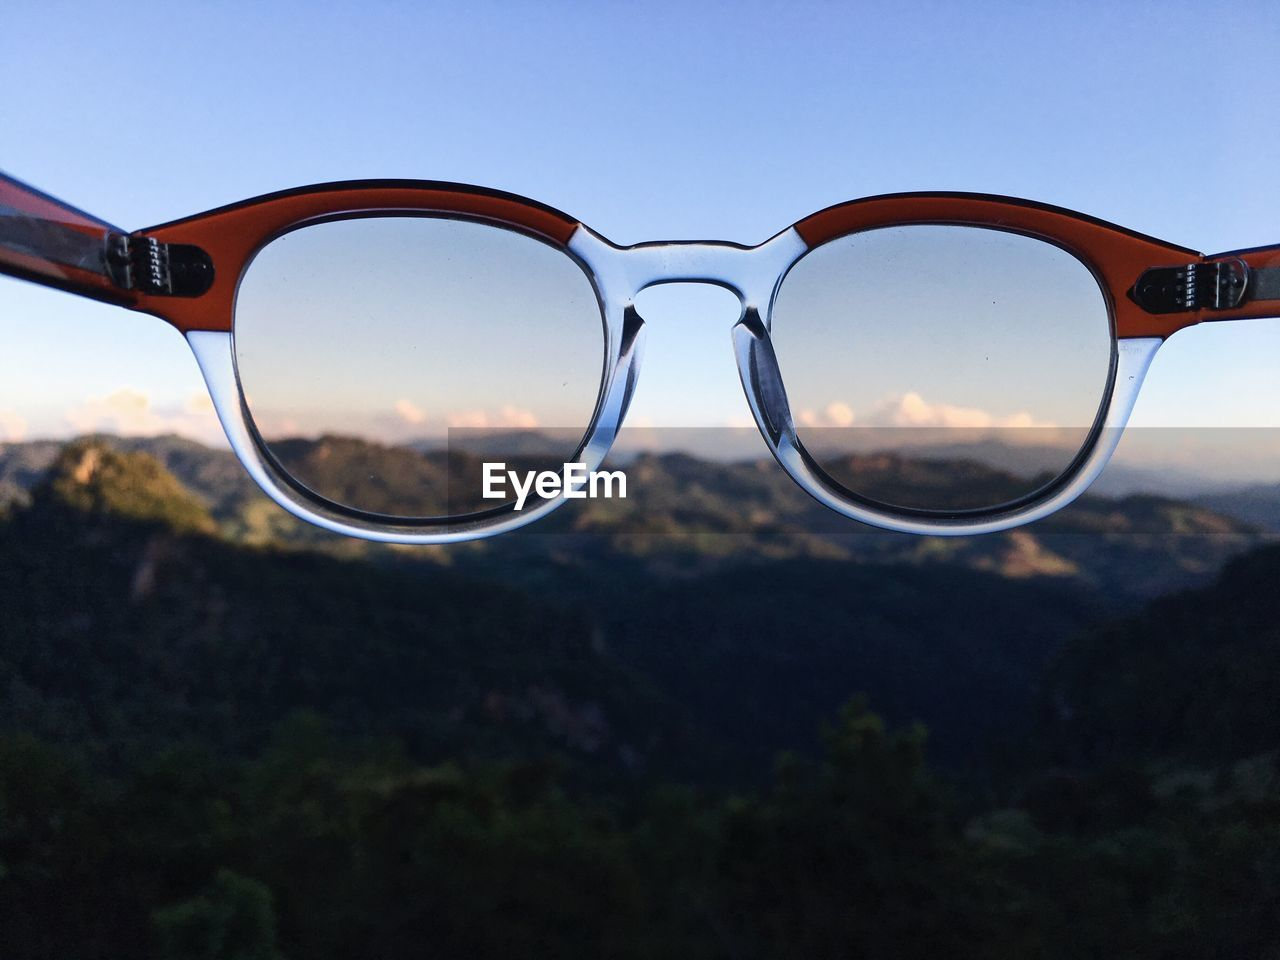 glasses, sunglasses, focus on foreground, close-up, eyeglasses, transparent, personal accessory, fashion, nature, glass - material, sky, land, day, security, no people, protection, vision, reflection, outdoors, still life, eyewear